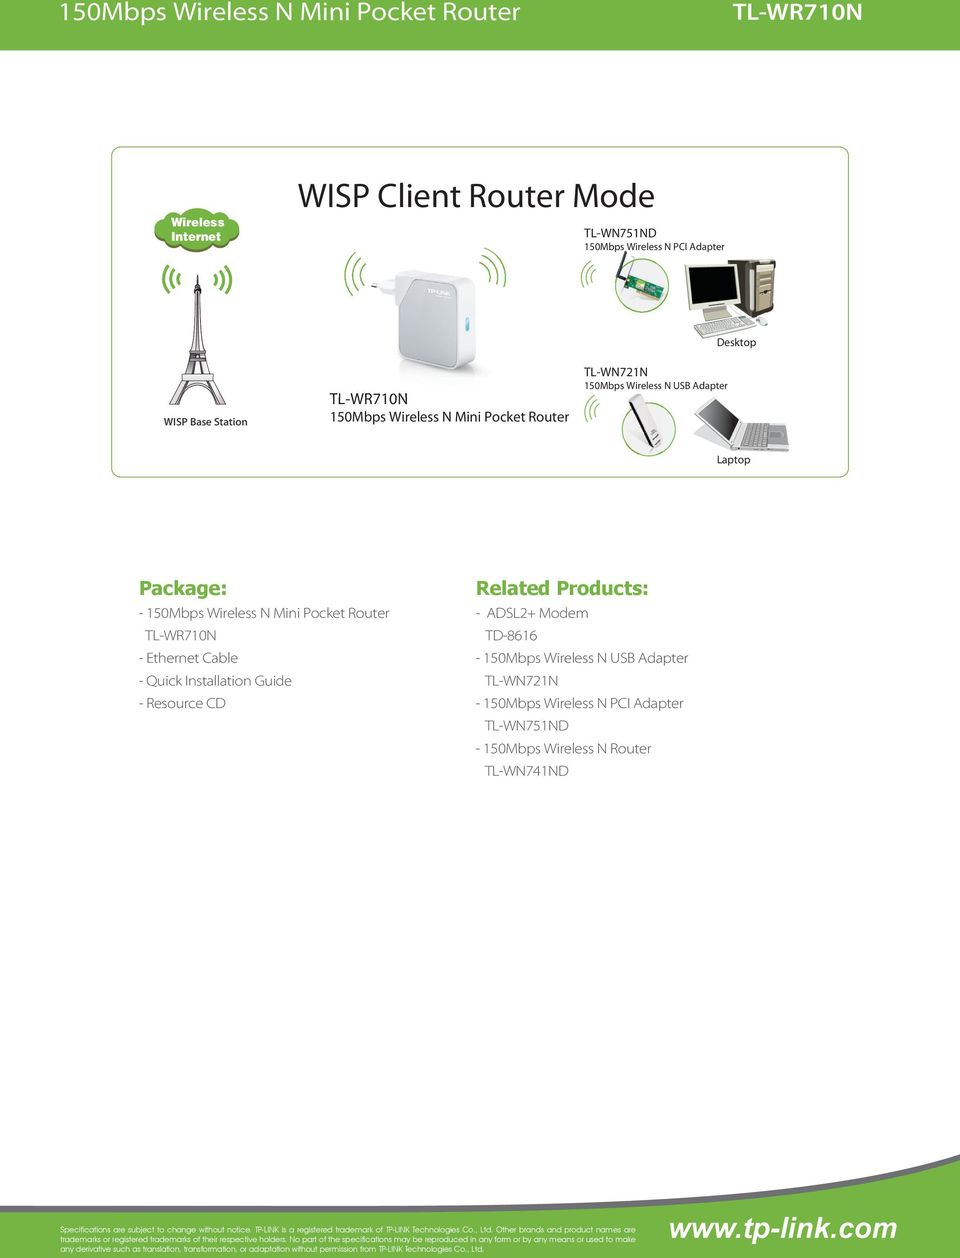 Products: - ADSL2+ Modem TD-8616 - - - 150Mbps Wireless N Router